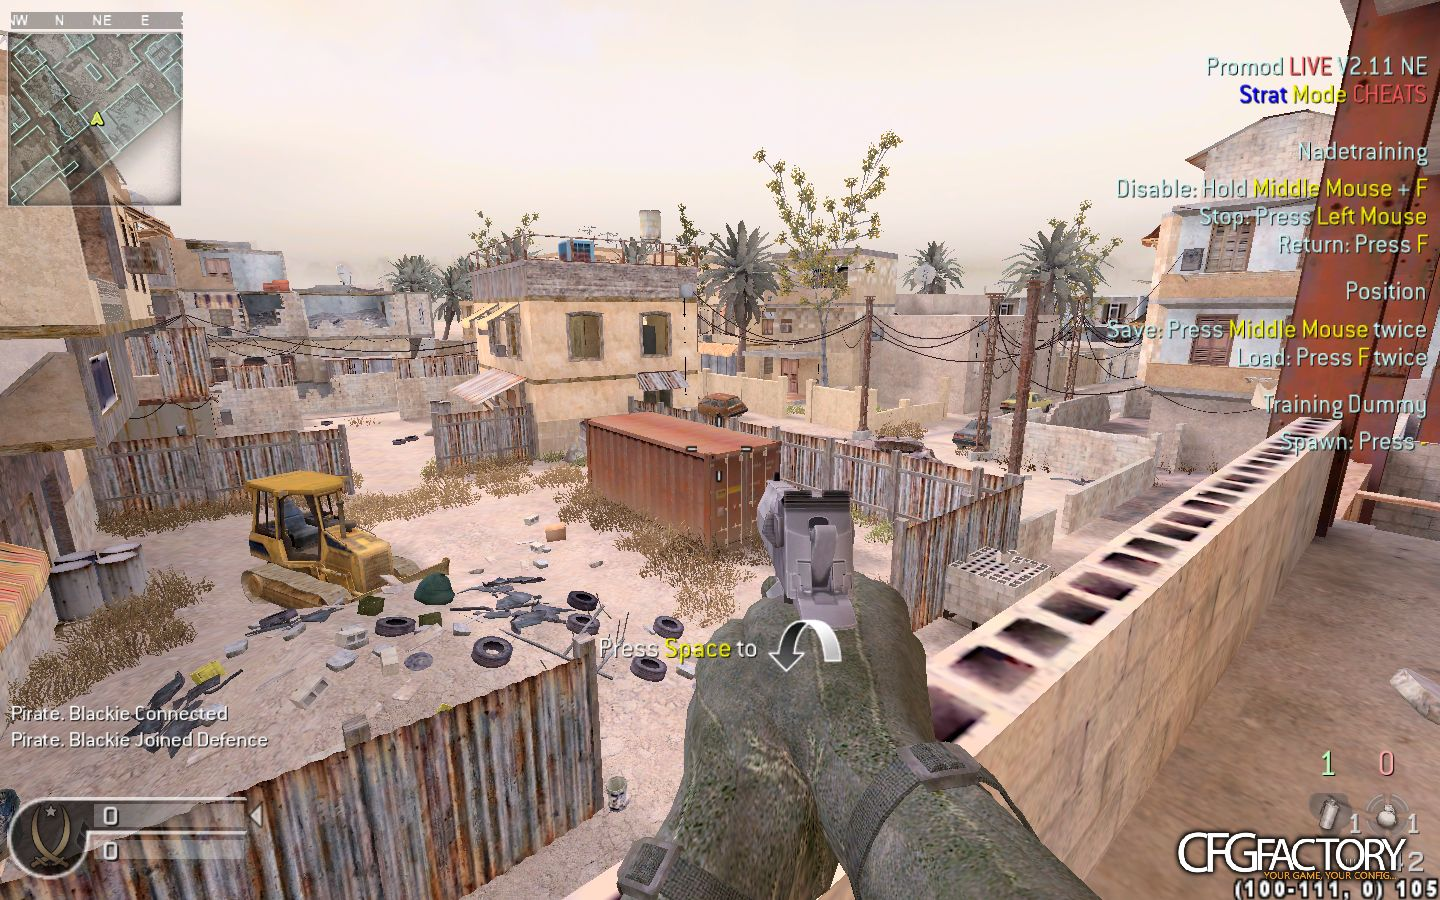 cod4, configs, blackie's config, blackie